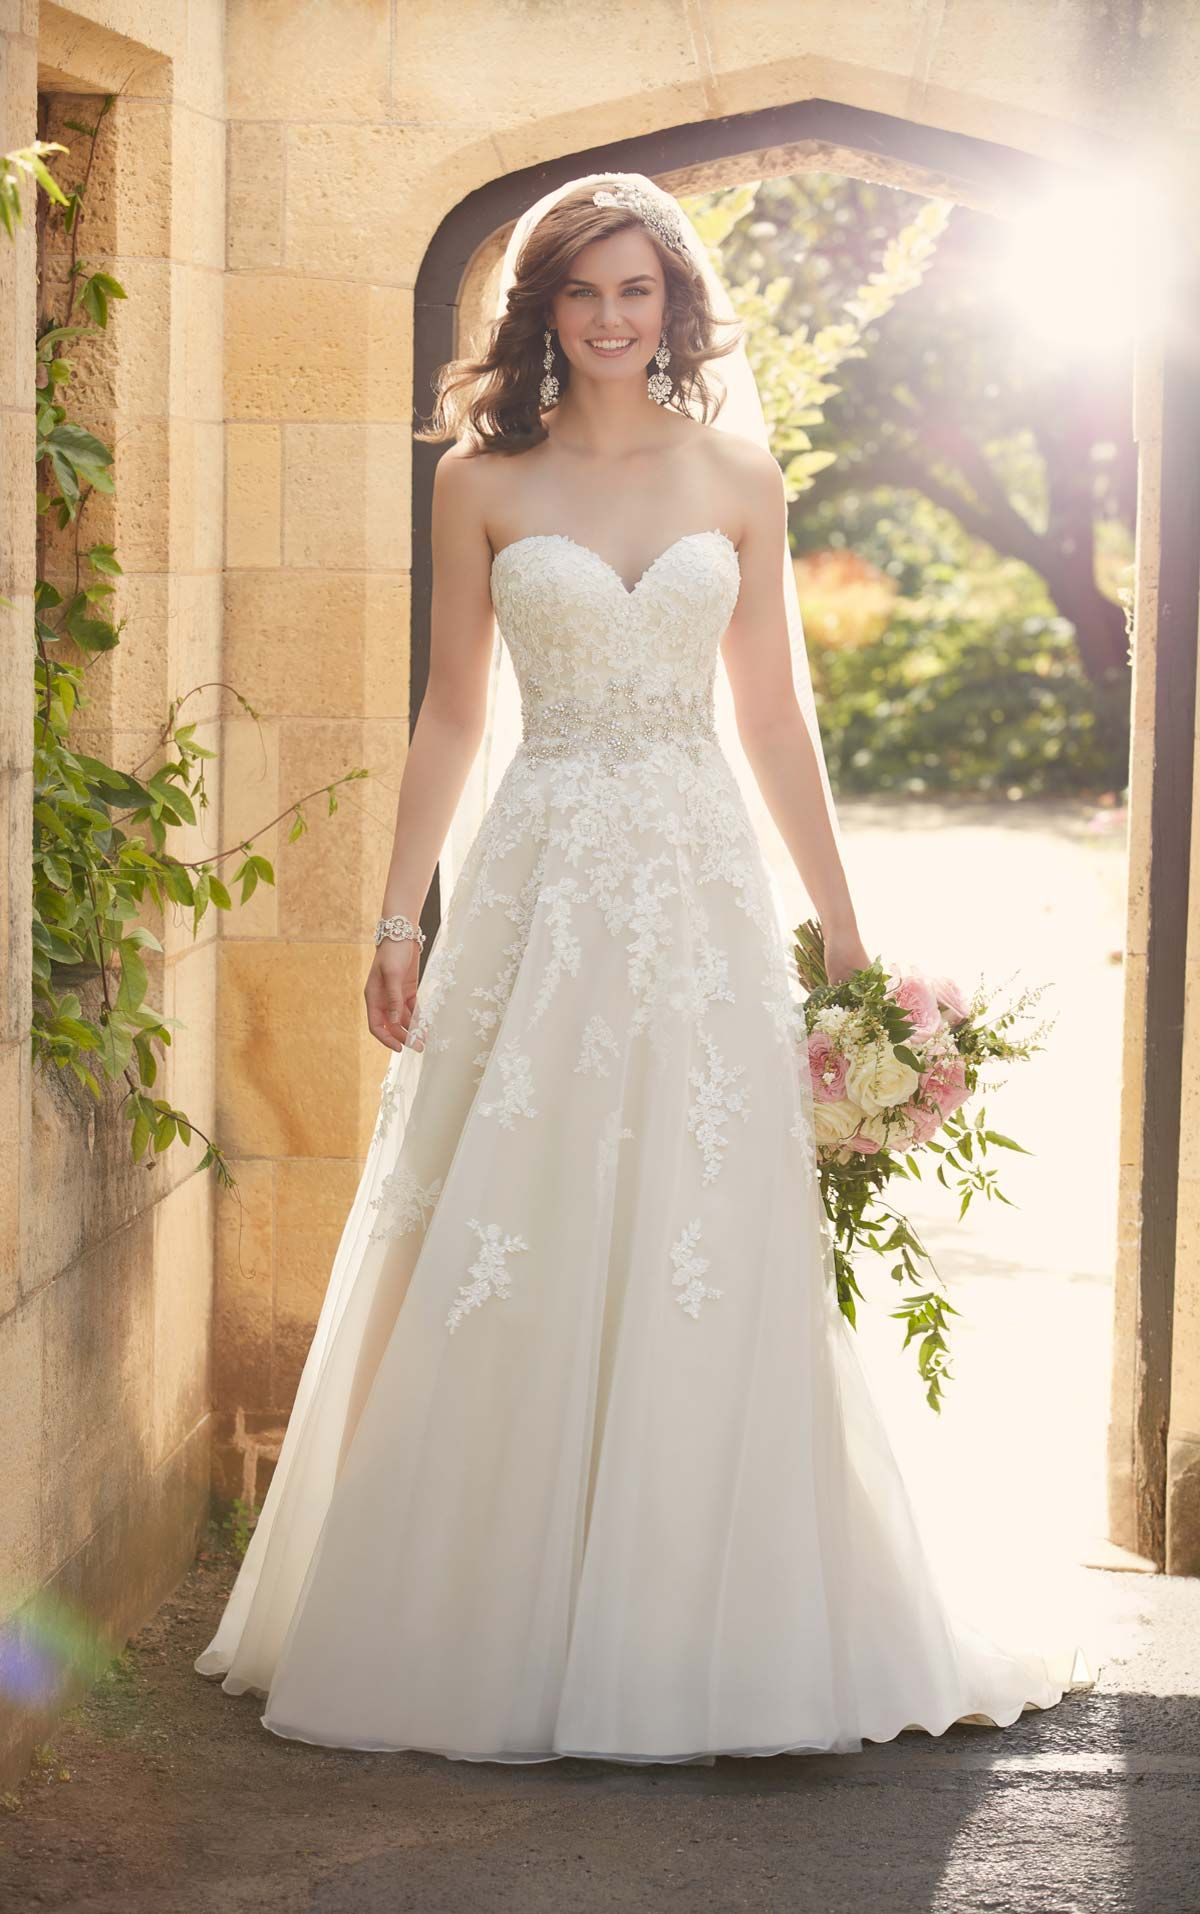 This Classically Elegant Lace And Tulle A Line Wedding Dress From Essense Of Australia Features Gorgeous Beaded Lace Throughout Its Fitted Bodice And Voluminous Essense Of Australia Wedding Dresses A Line Wedding Dress,Wedding Ceremony Dresses Pakistani